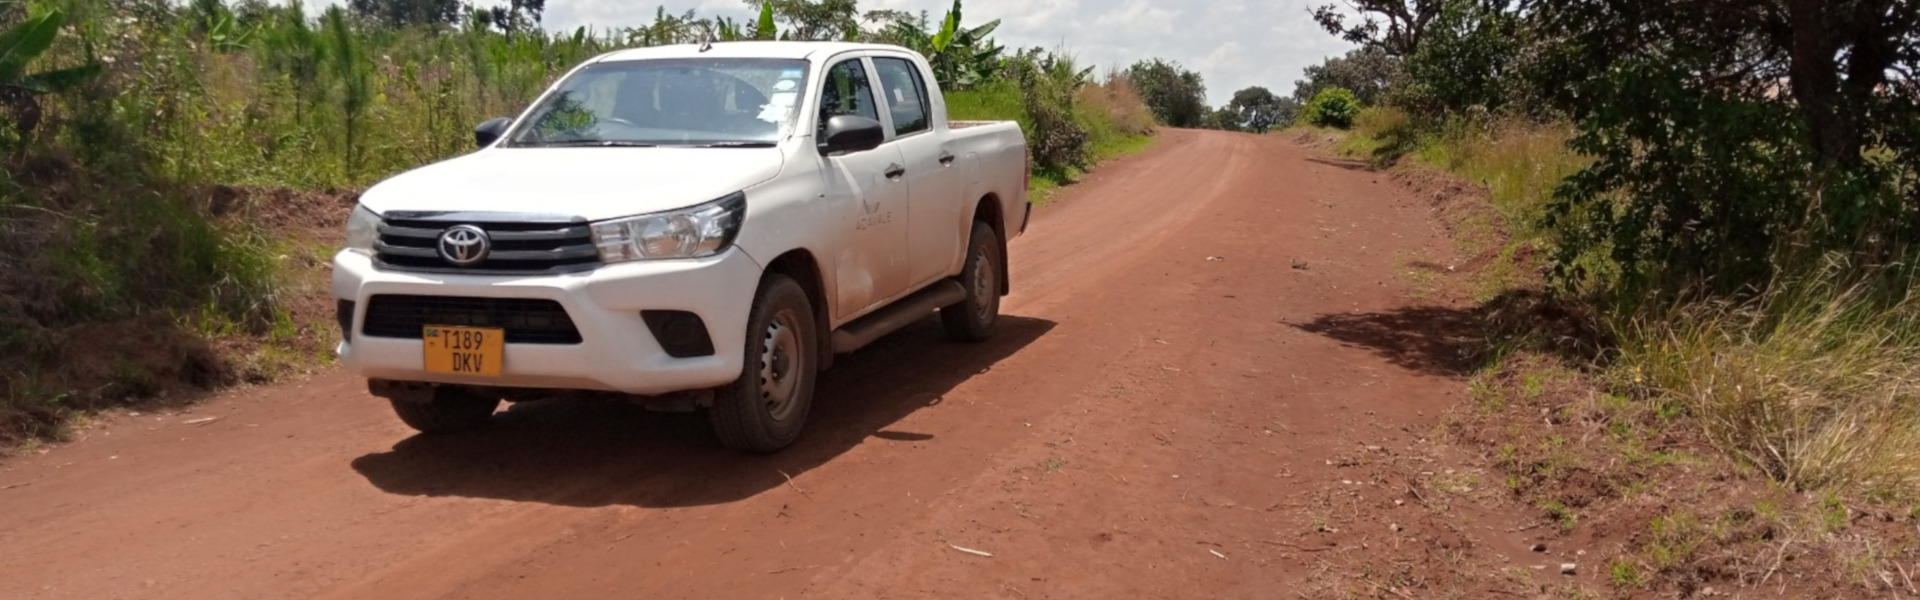 White mining exploration truck on a dirt road in Tanzania